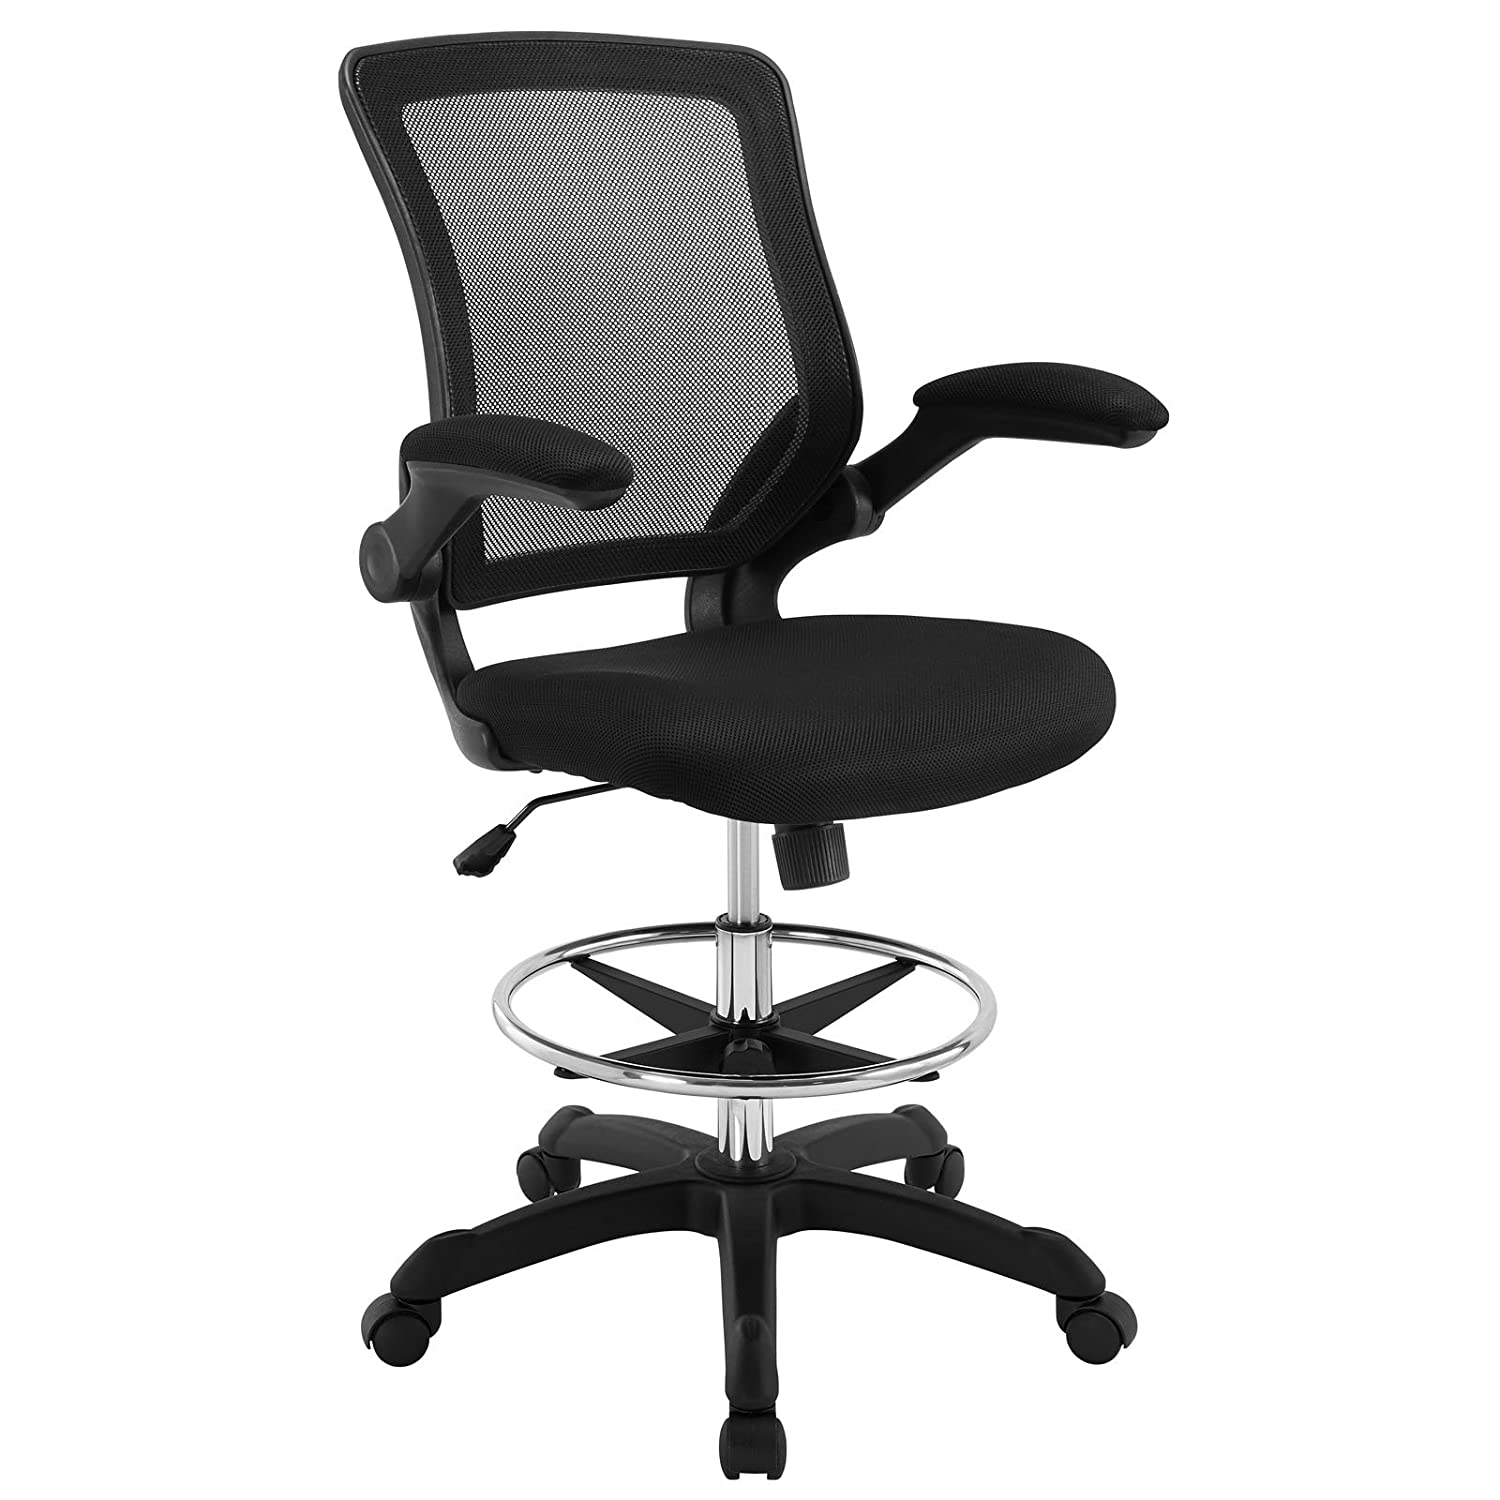 Surprising Modway Mo Eei 1423 Blk 22 5L X 25 5W X 41 5 50H Black Uwap Interior Chair Design Uwaporg